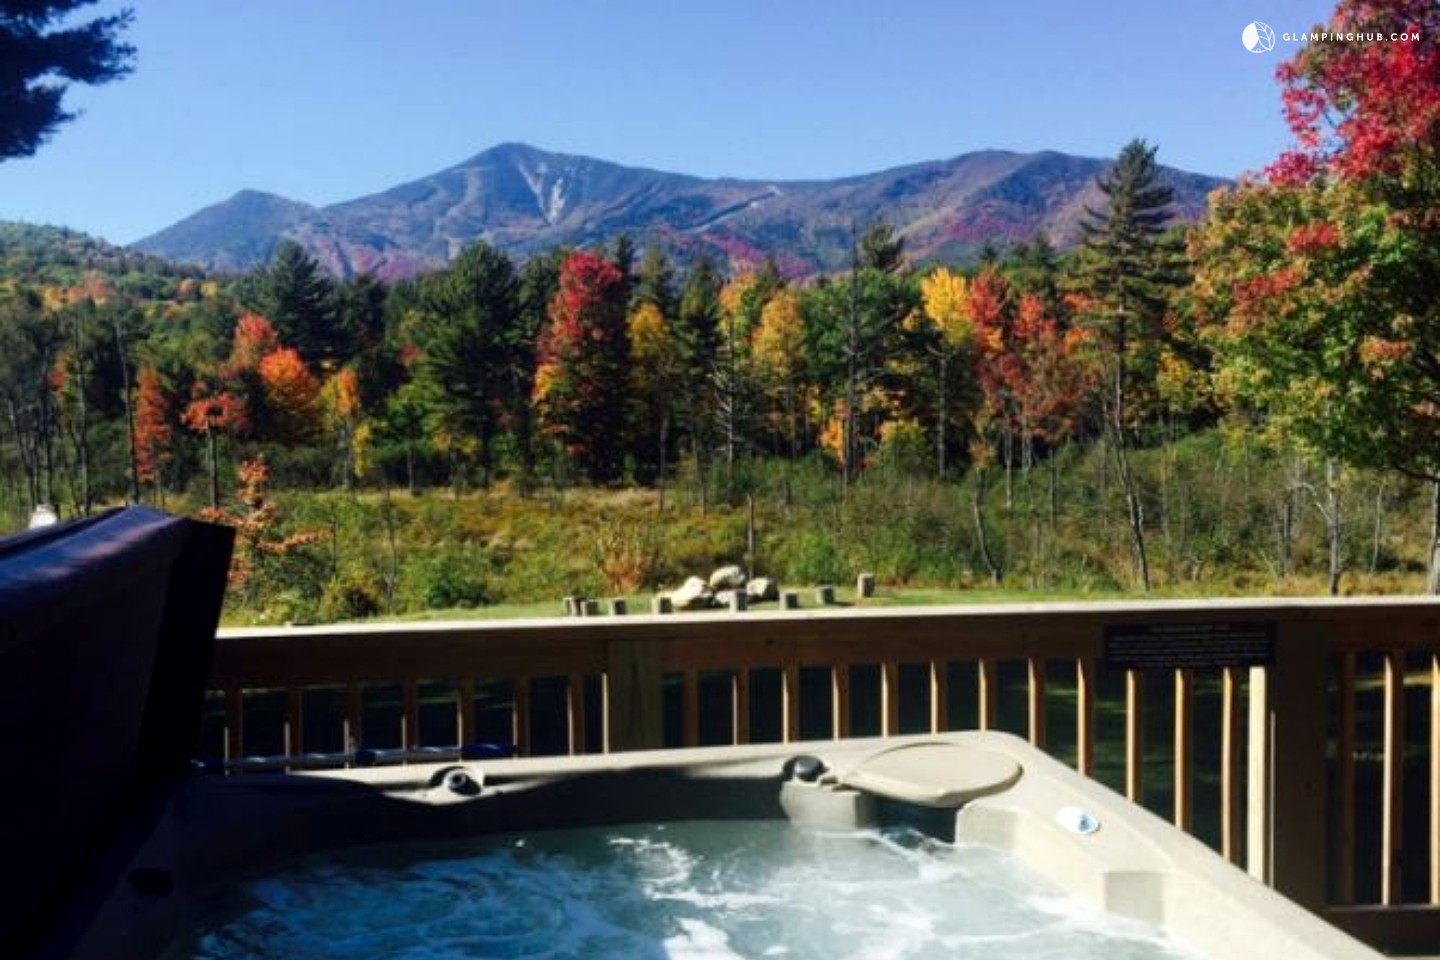 7 romantic fall getaway spots in the northeastern u s for Romantic weekend getaways in ny